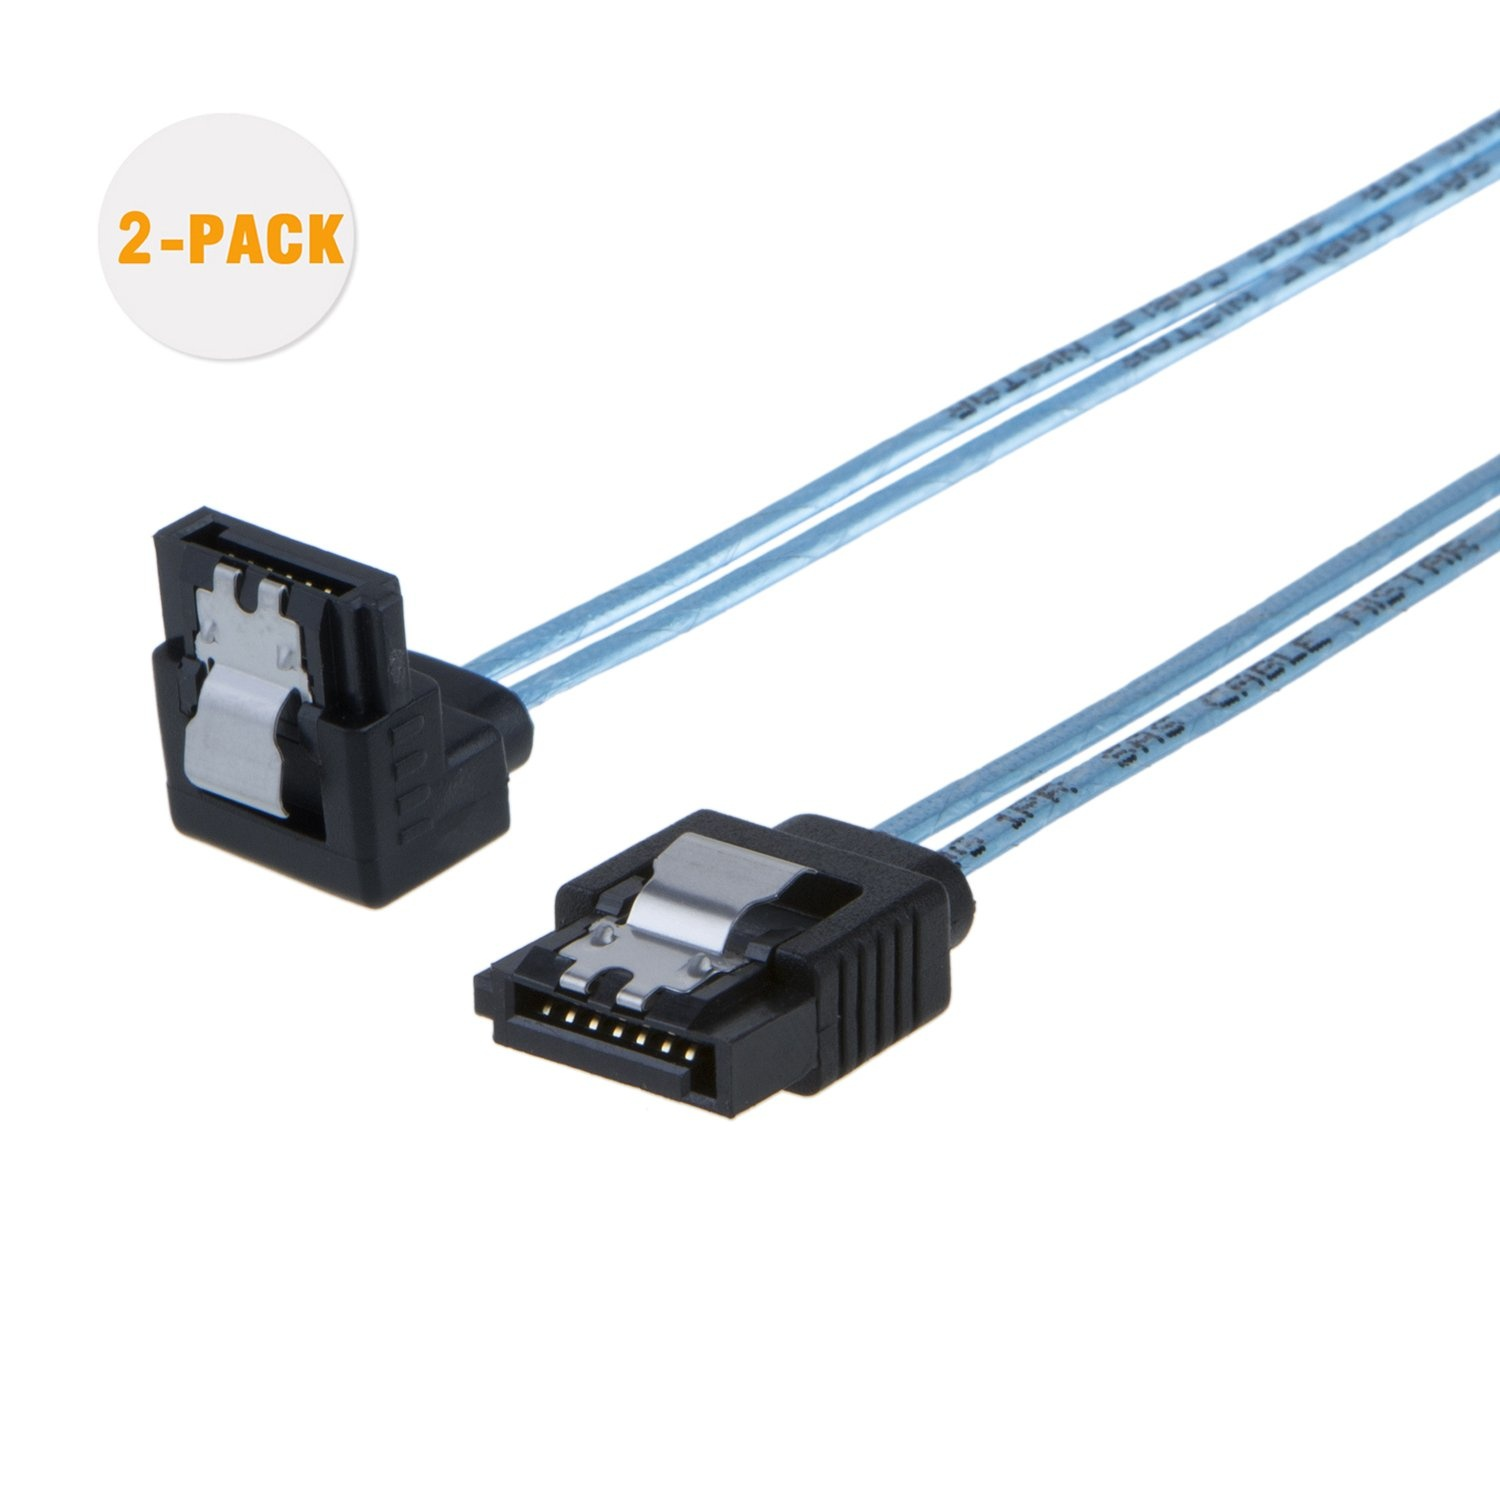 High Quality Sata Cable -  [5-Pack] SATA III Cable 1.5 Feet/0.45 Meters Blue, #CS0062 – CableCreation